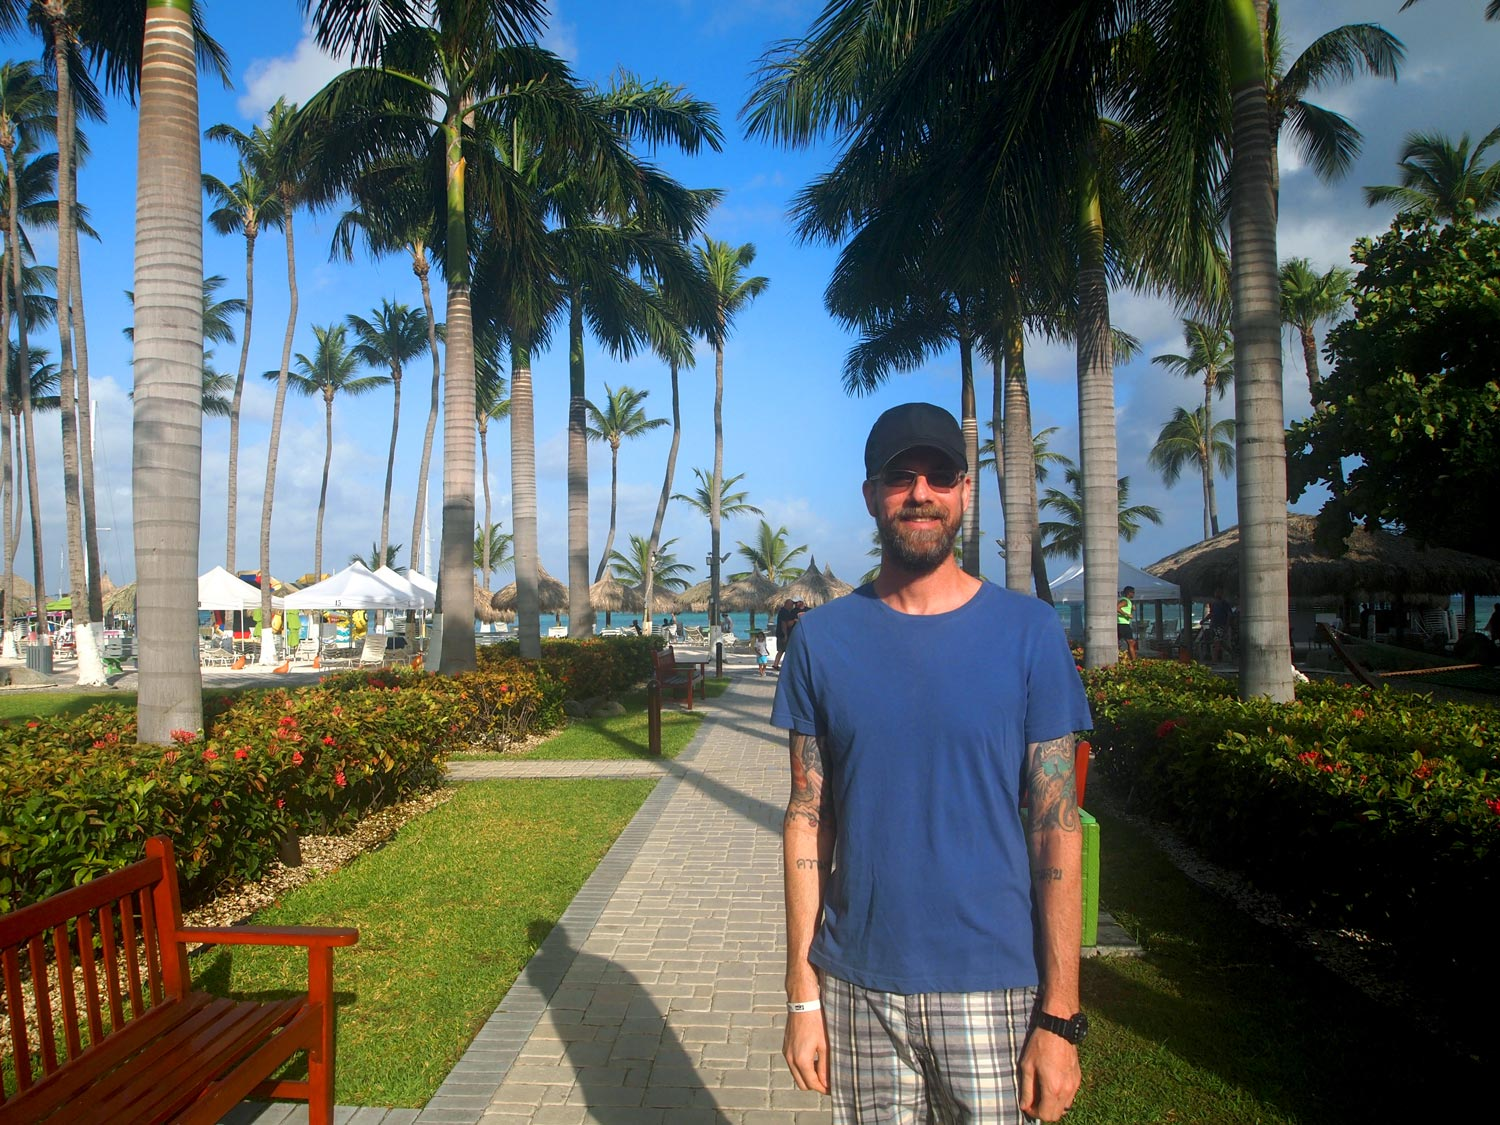 Aruba-Holiday-Inn-Grounds-walkway-Brian.jpg